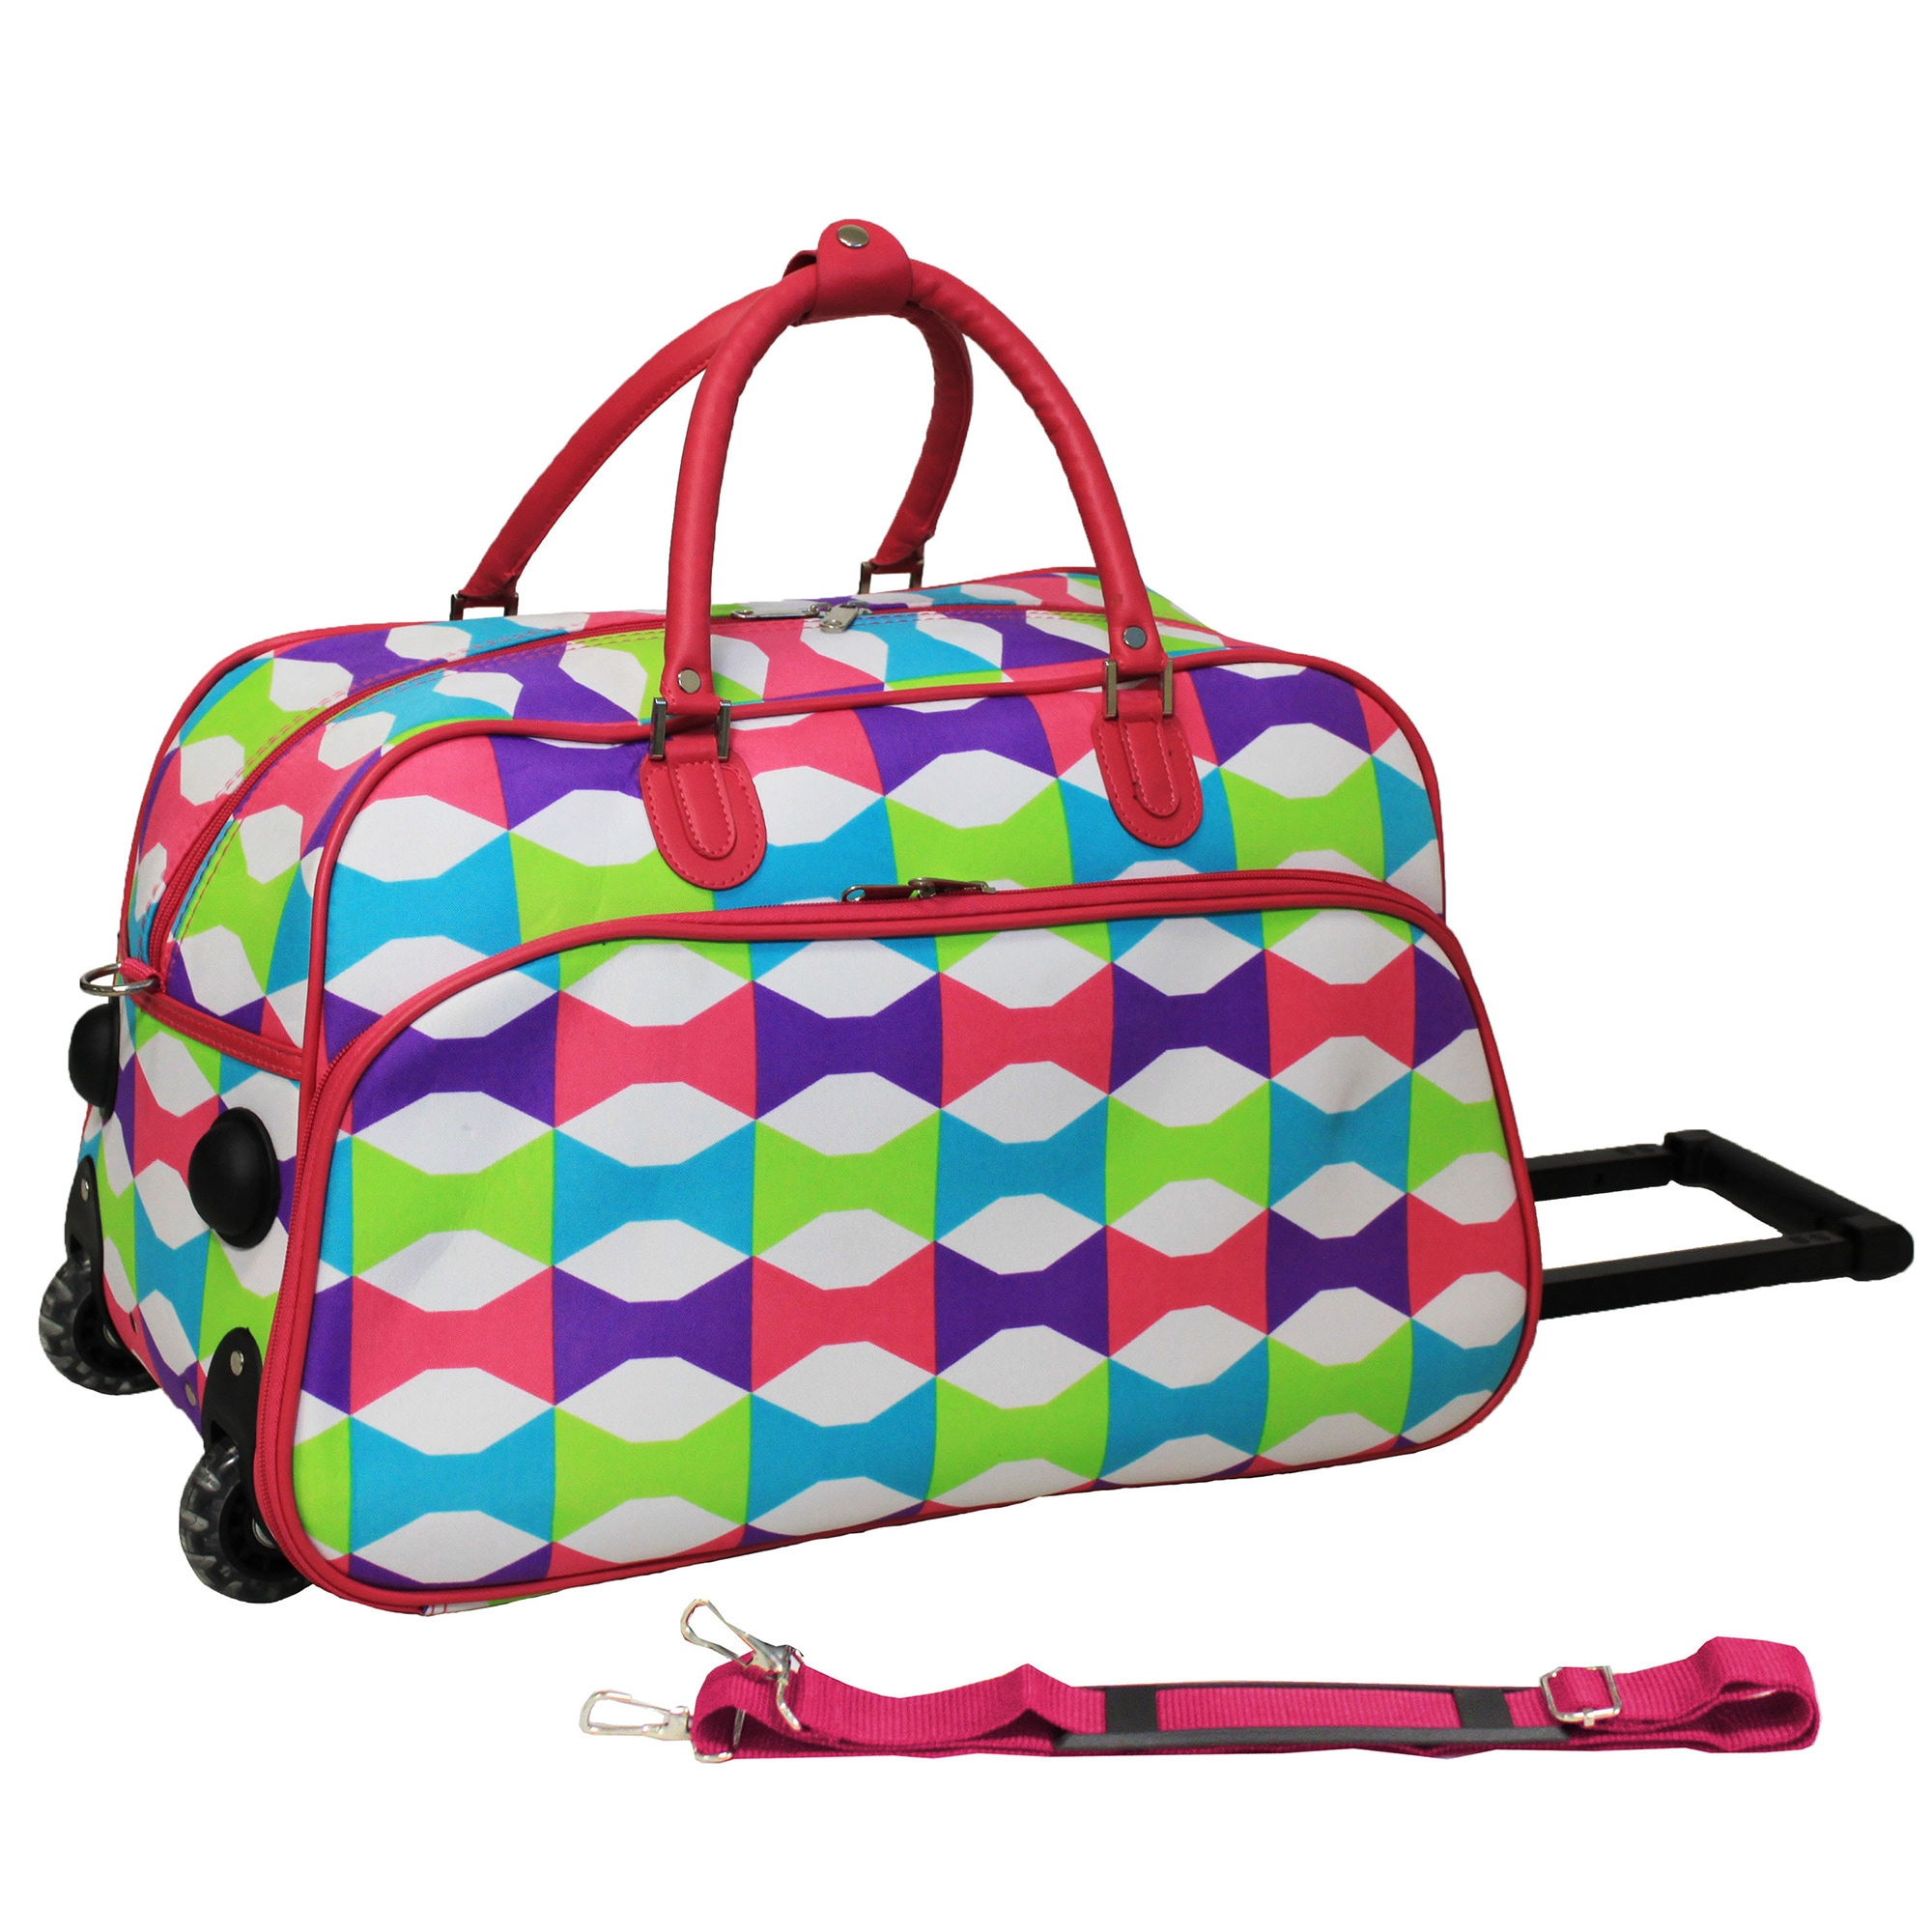 21 Inch Carry On Rolling Duffle Bag